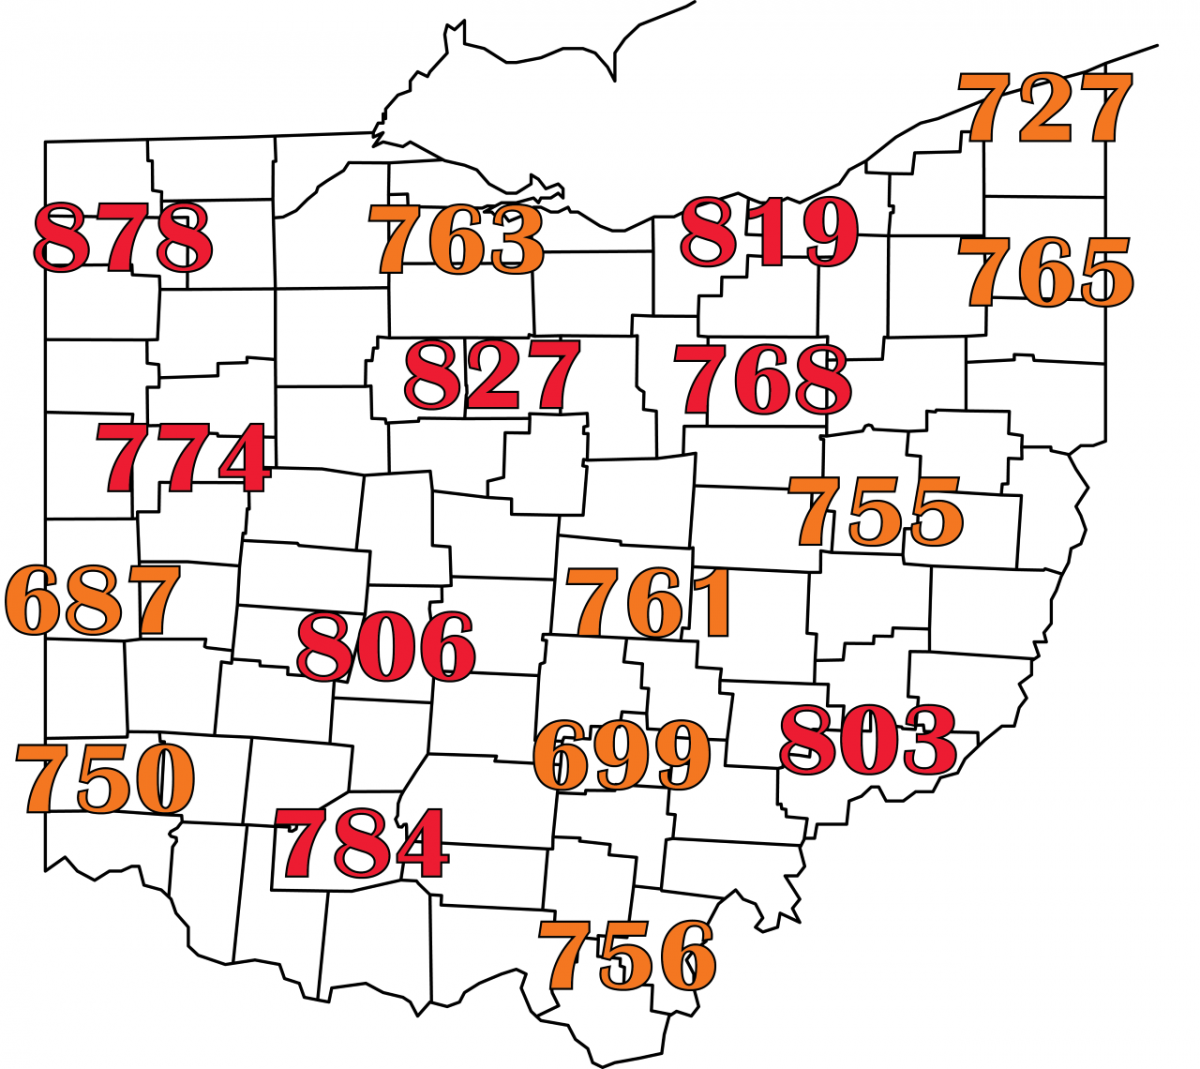 Accumulated growing degree days (base 52°F) through June 20, 2021. Orange numbers indicate areas where 50% percent of corn rootworm larvae will likely have hatched with red numbers indicating conditions that are past this GDD range. Data courtesy of the Midwestern Regional Climate Center (https://mrcc.illinois.edu).